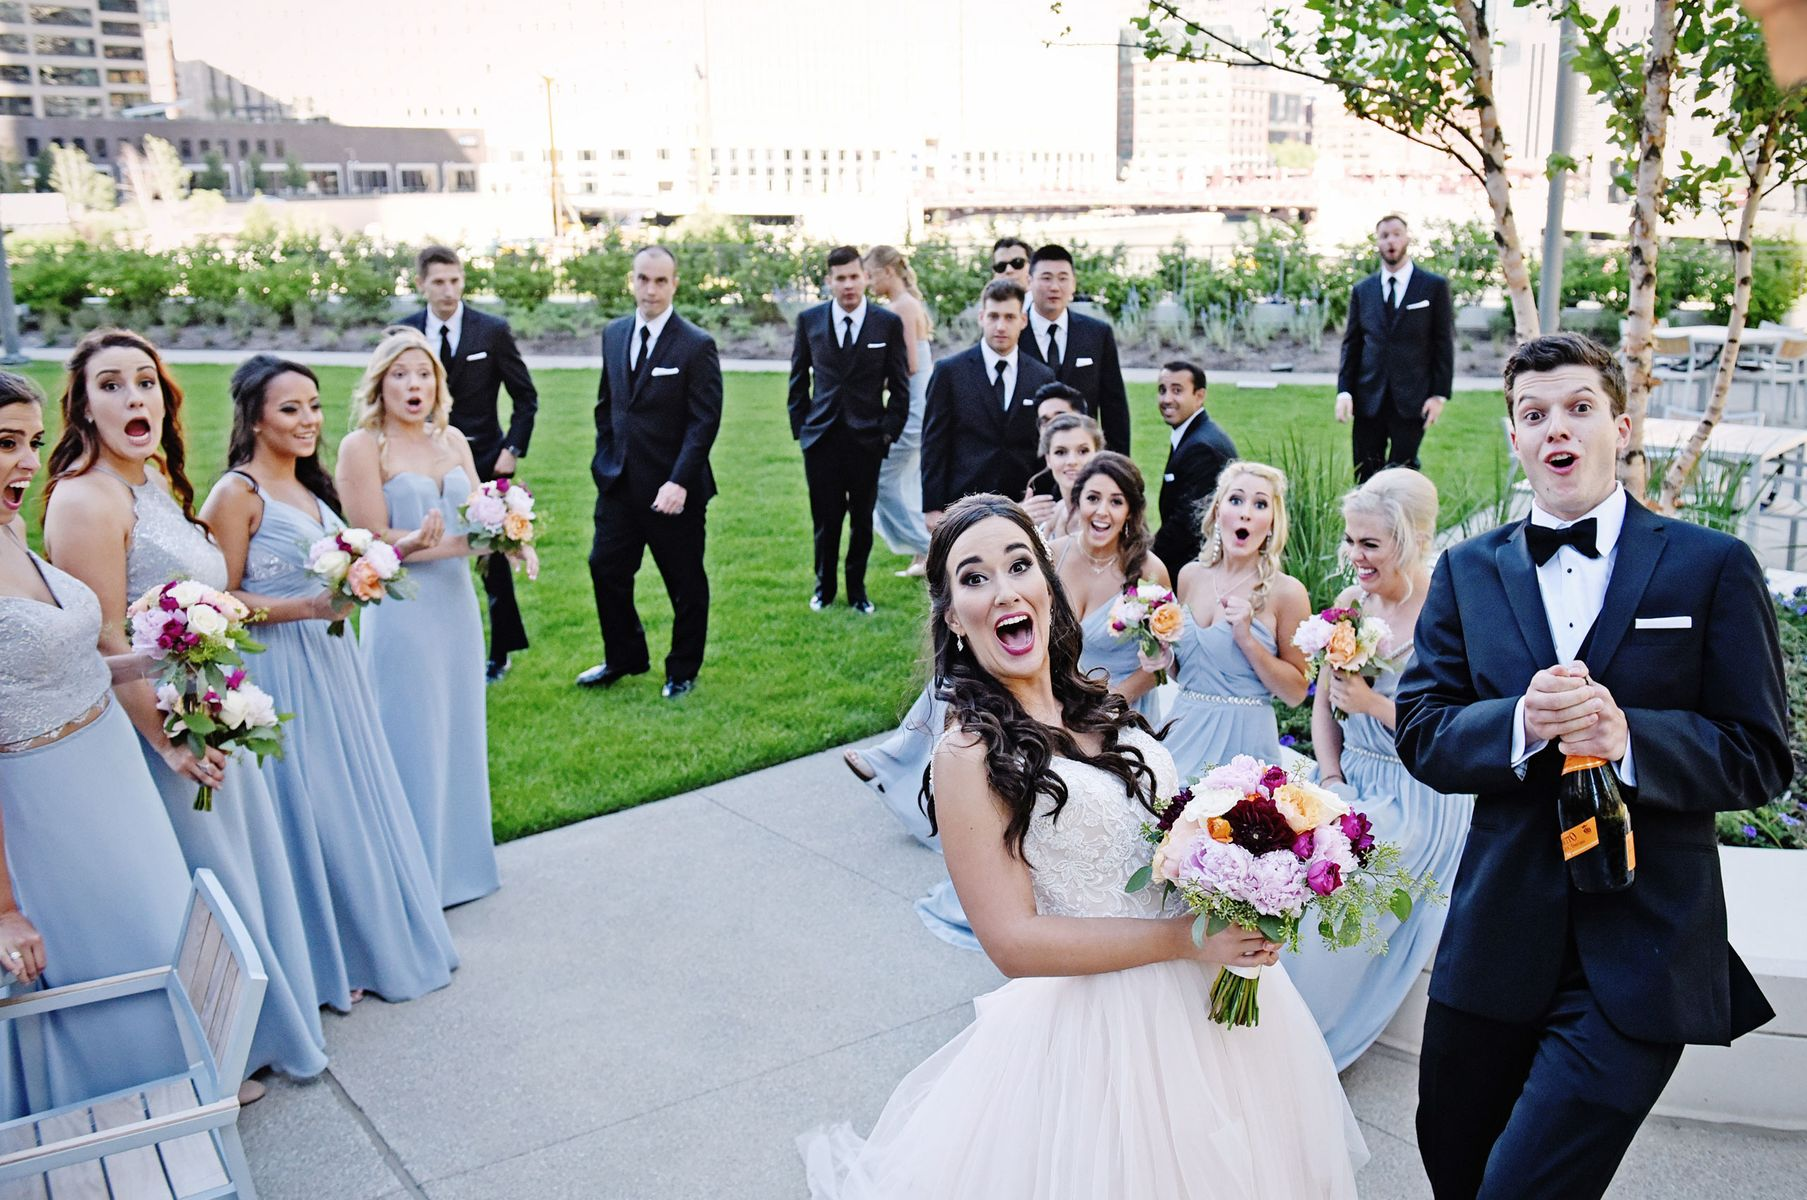 Wedding-Bridal-party-pops-Champagne-at-photographer-and-hits-camera-by-accident.jpg